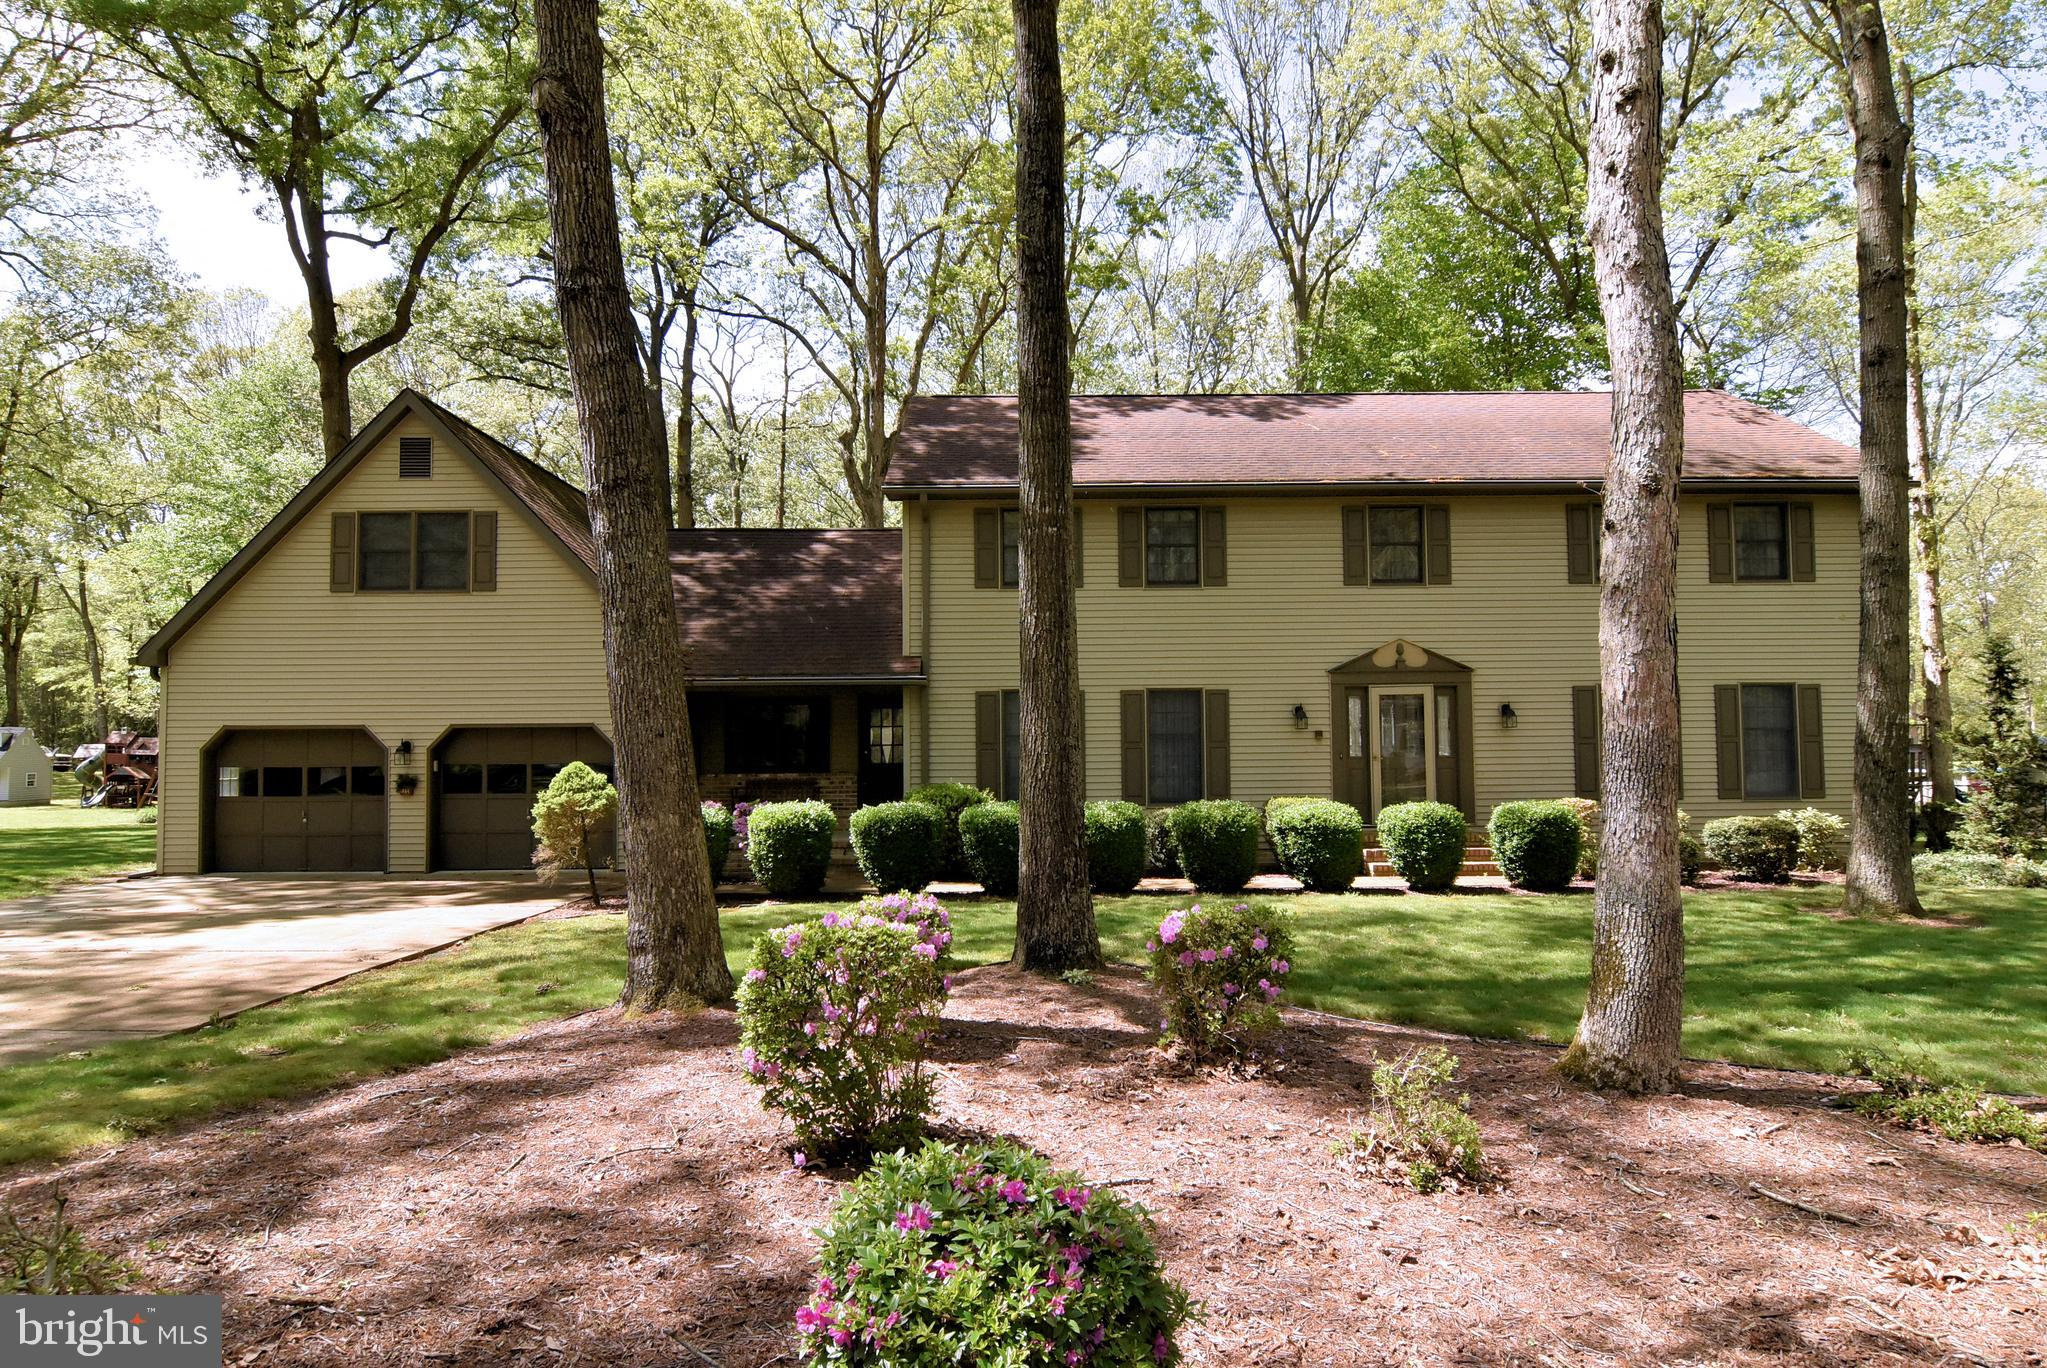 This large home in desirable location just outside Seaford is ready for a new family to enjoy.  Enter from the garage or front into the office/mudroom area with half bath.  From there you enter the large eat in kitchen with bar that is open to the family room with wood burning fireplace.  To the rear there is a 16'x52' deck overlooking the manicured rear yard.  In the front of the house there is a formal living room and formal dining room.  Upstairs there is a large master with walk in closet and dressing table along with 3 additional bedrooms and a hall bath.  At the end of the hall there is an upstairs sitting room and an upstairs laundry with half bath.  Beyond the sitting room is the large game room with cathedral ceilings and another deck.  Oversized (24'x27') 2 car garage and 14'x16' shed for plenty of storage.  Well maintained and  cared for, this home is hard to come by and impossible to replace at this price.